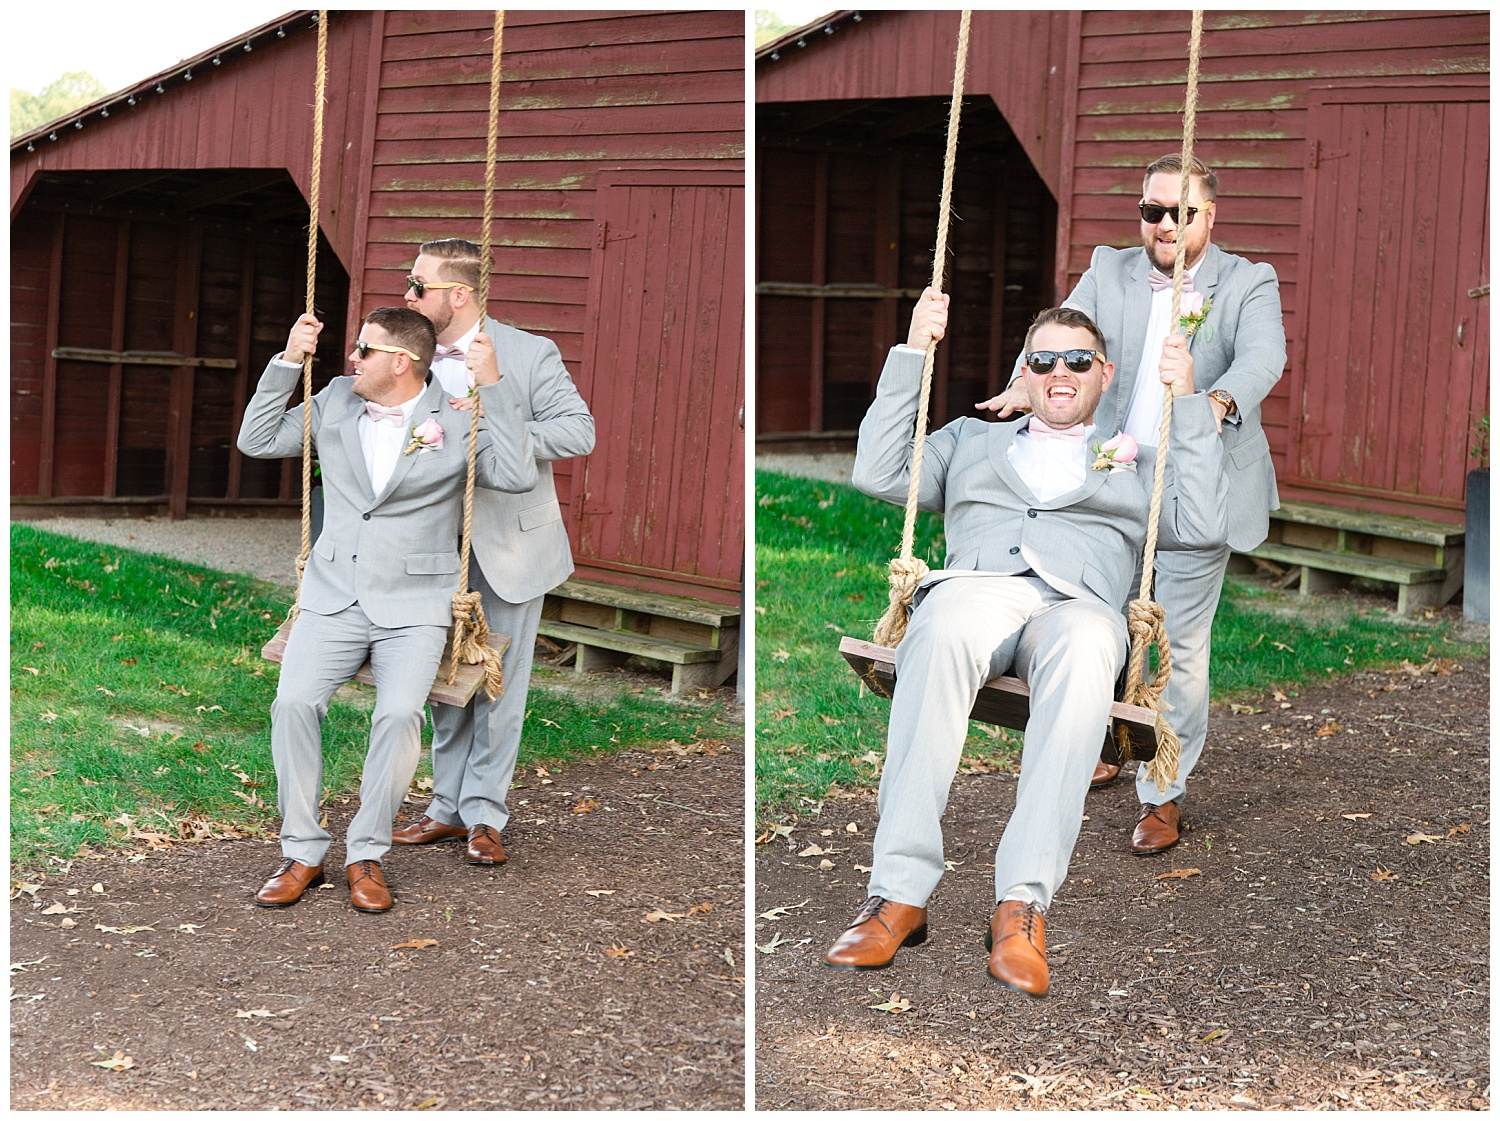 And while the girls are taking their portraits, the guys have fun swinging haha!